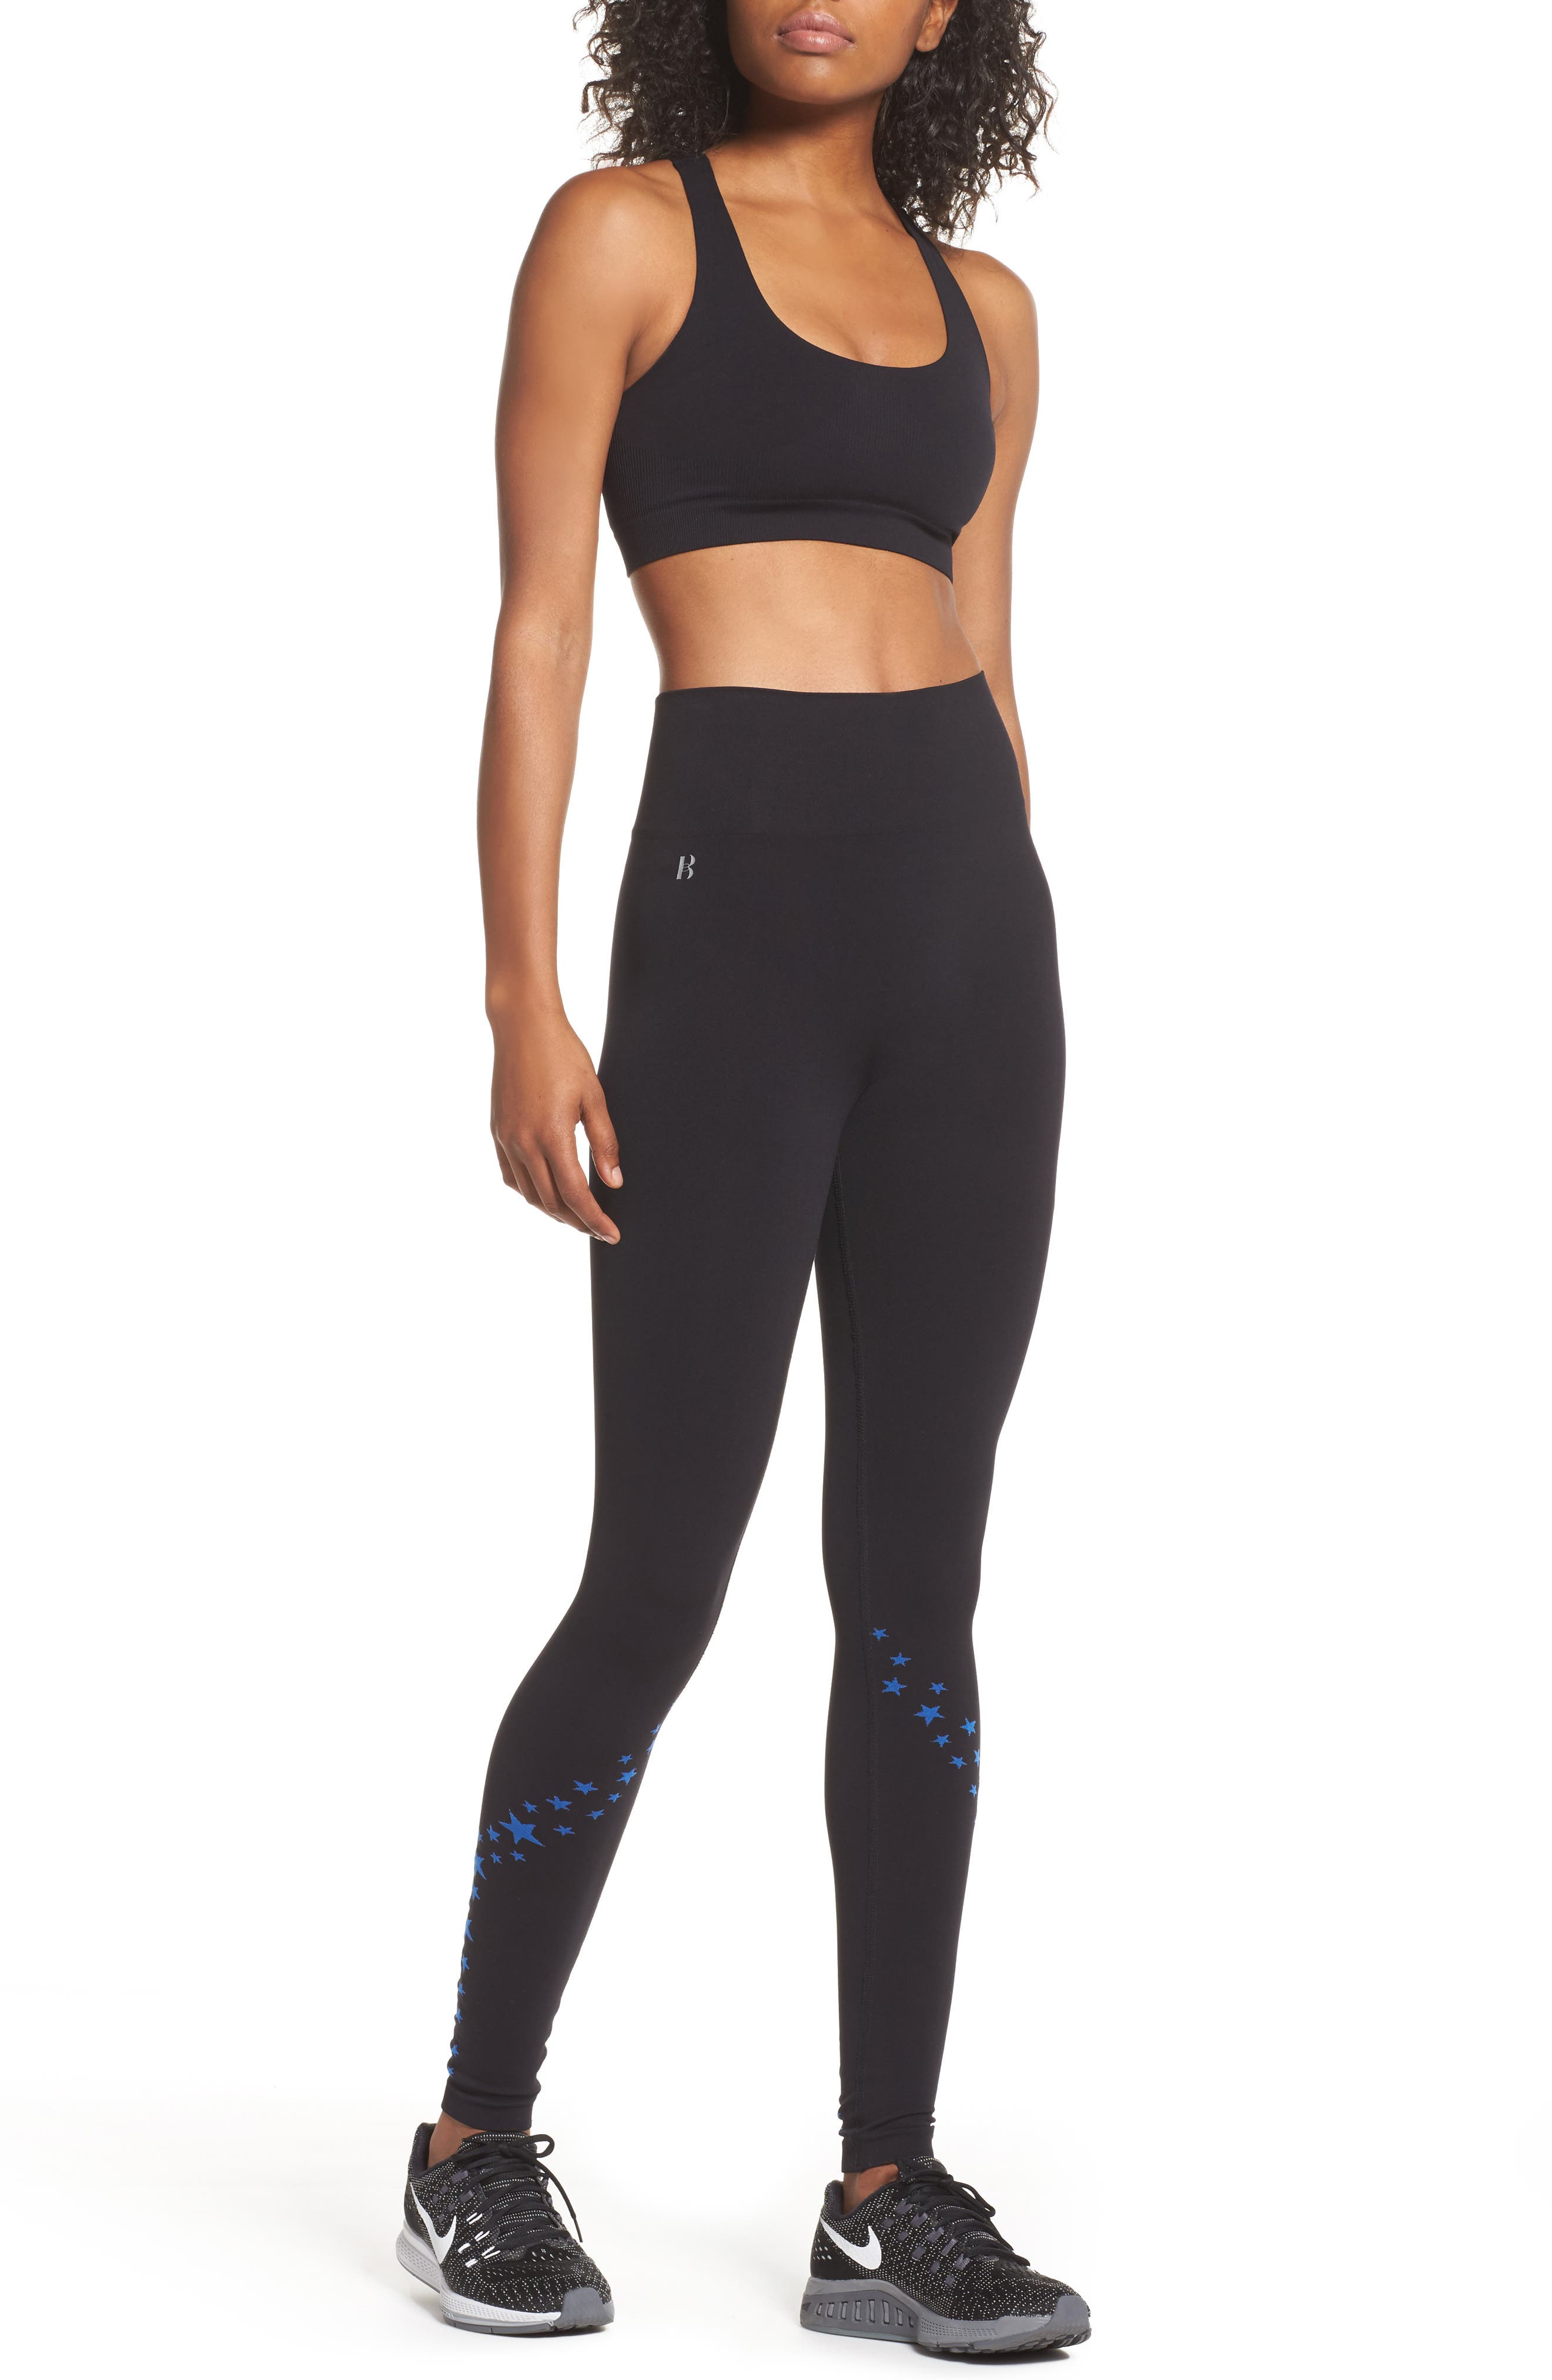 BoomBoom Athletic Seamless Star Sports Bra,                             Alternate thumbnail 8, color,                             005